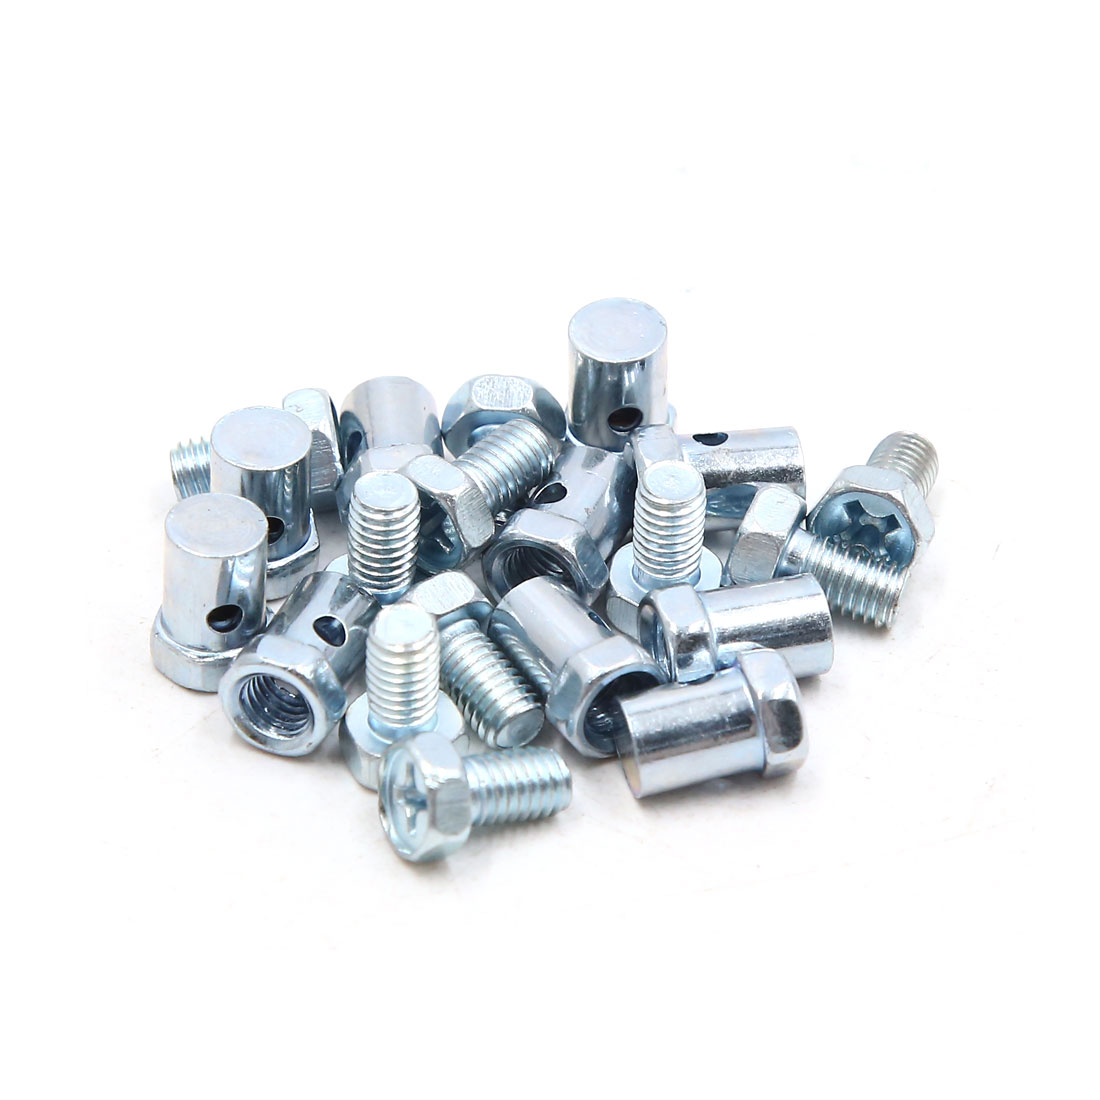 10pcs 5mm Thread Motorcycle Scooter Brake Cable Wire Solderless Nipple Screws